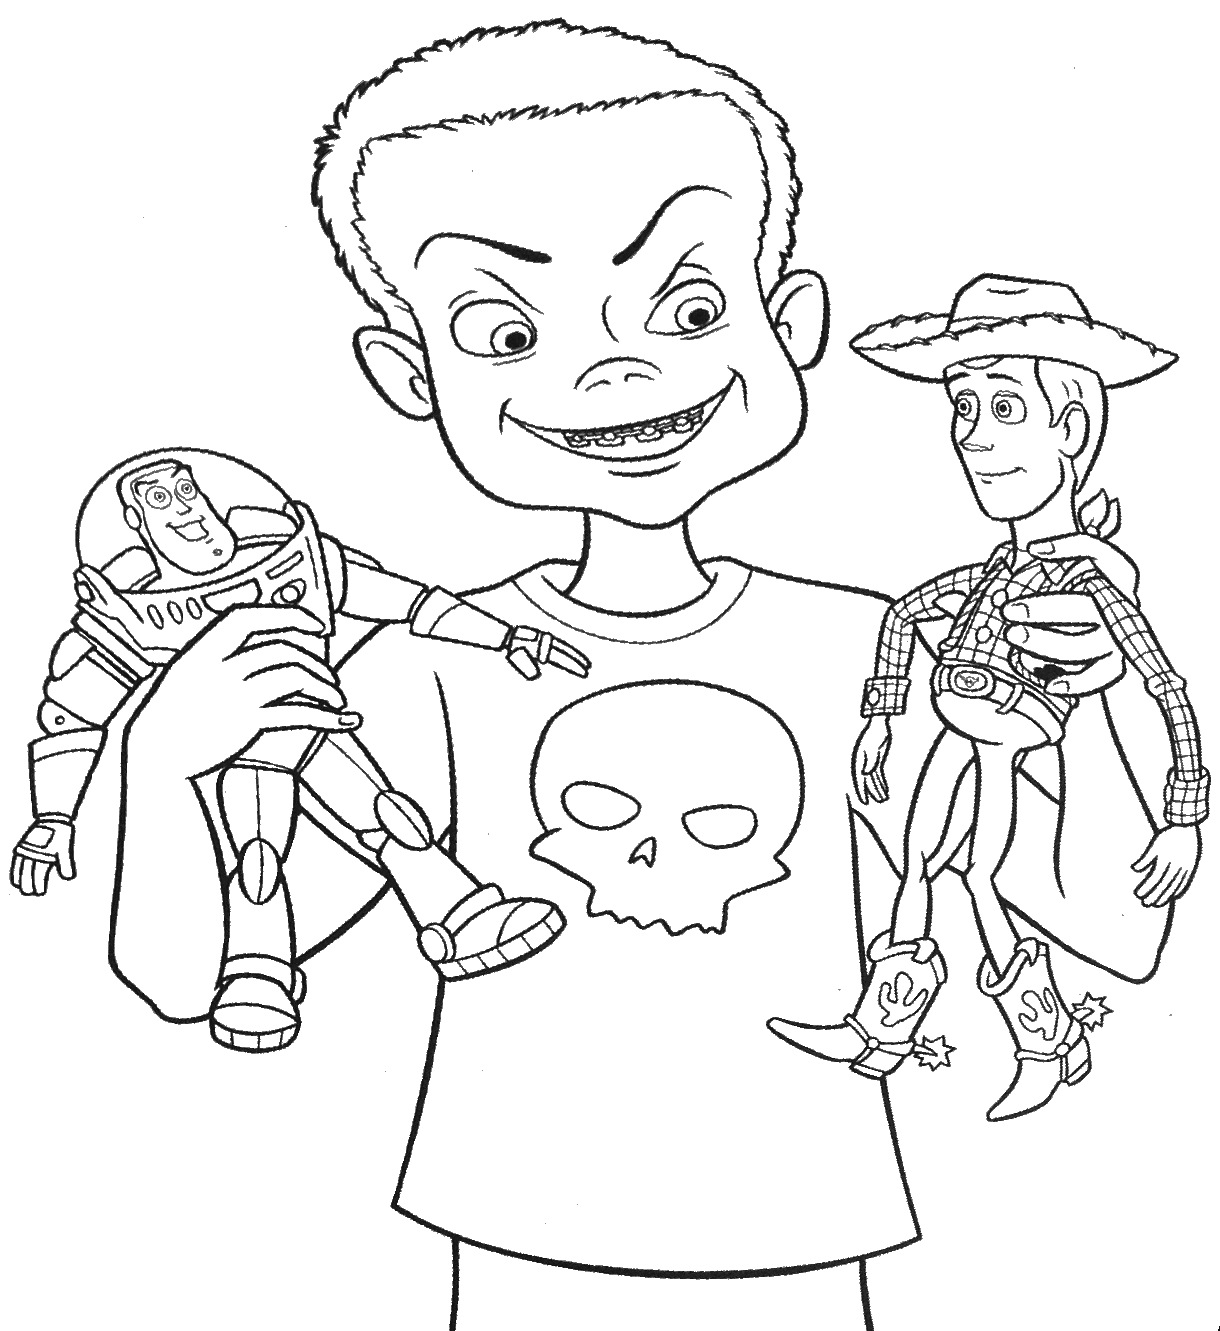 Jessie Toy Story Drawing At Getdrawings